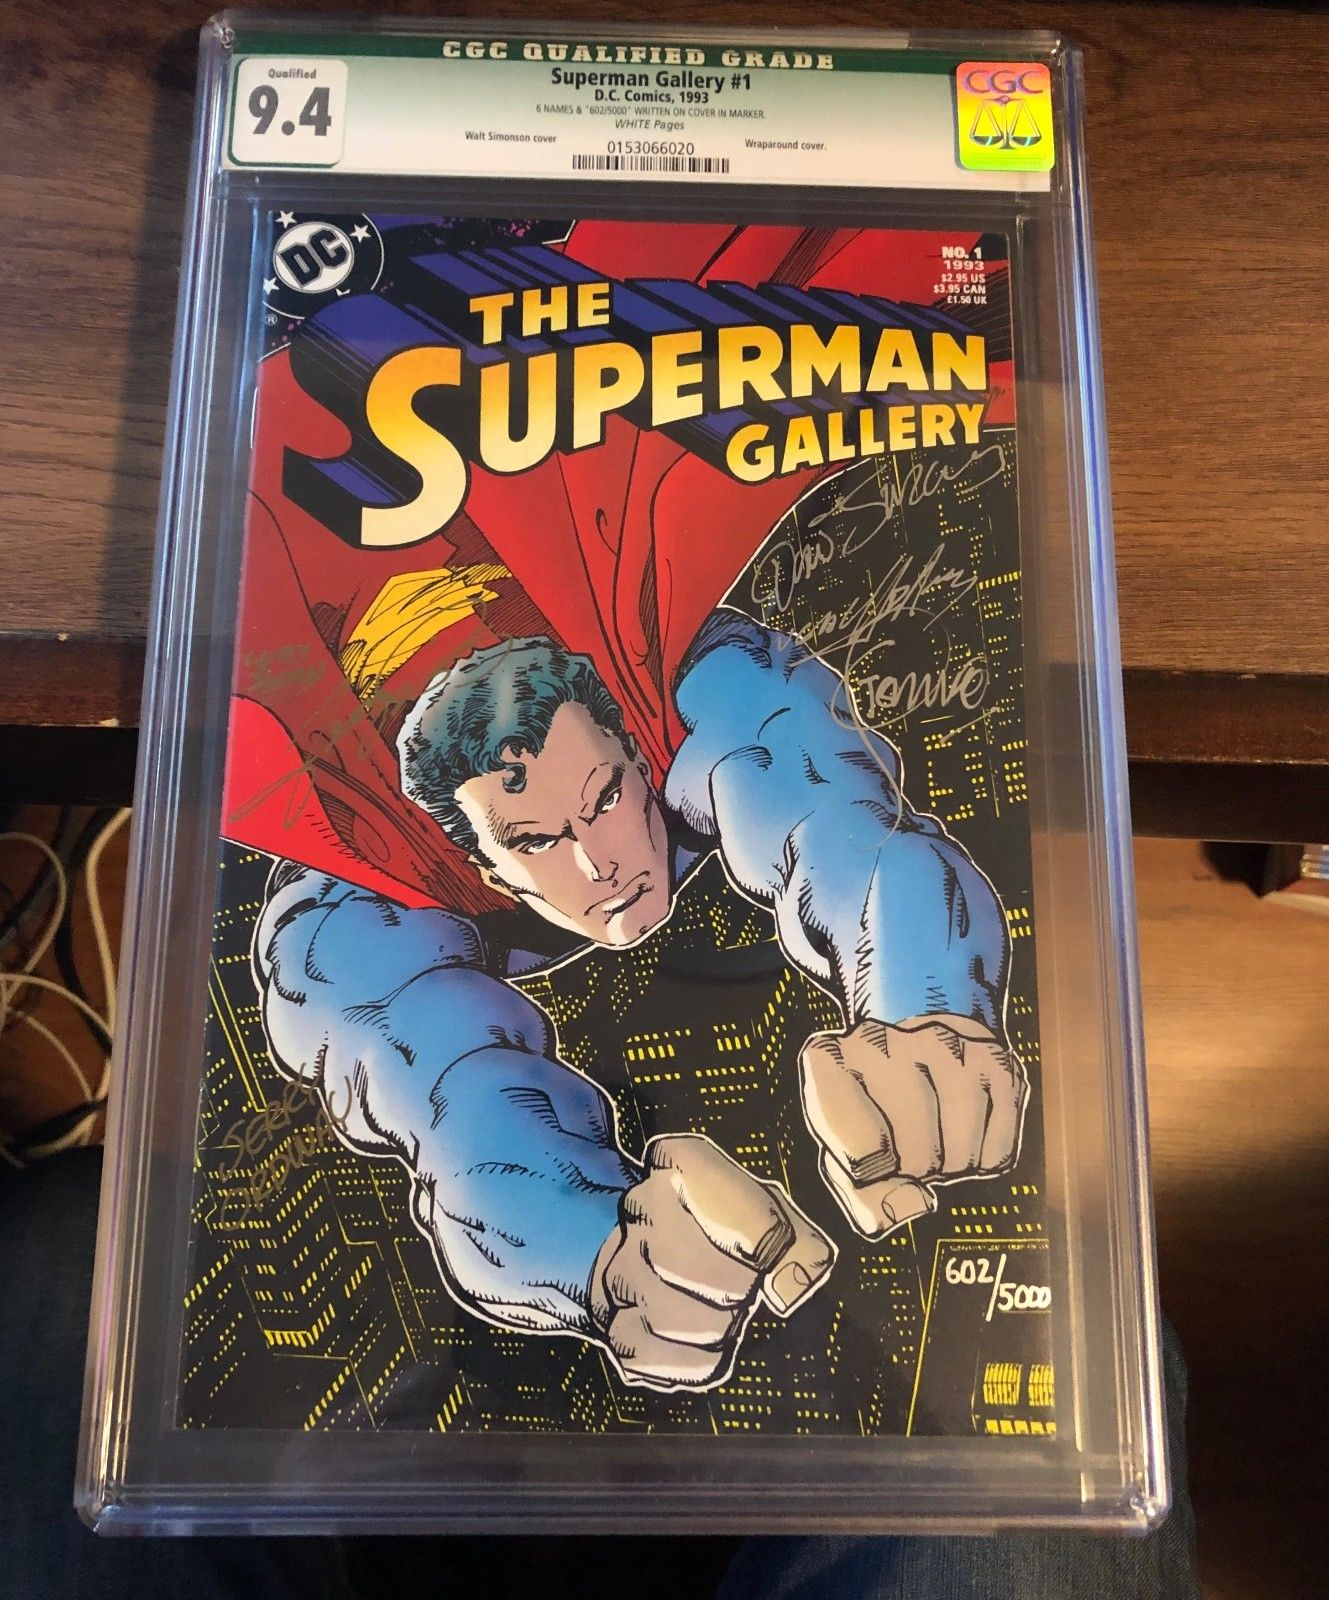 SUPERMAN GALLERY #1  CGC 9.4 Limited Edition # 602/5,000 Signed by 6